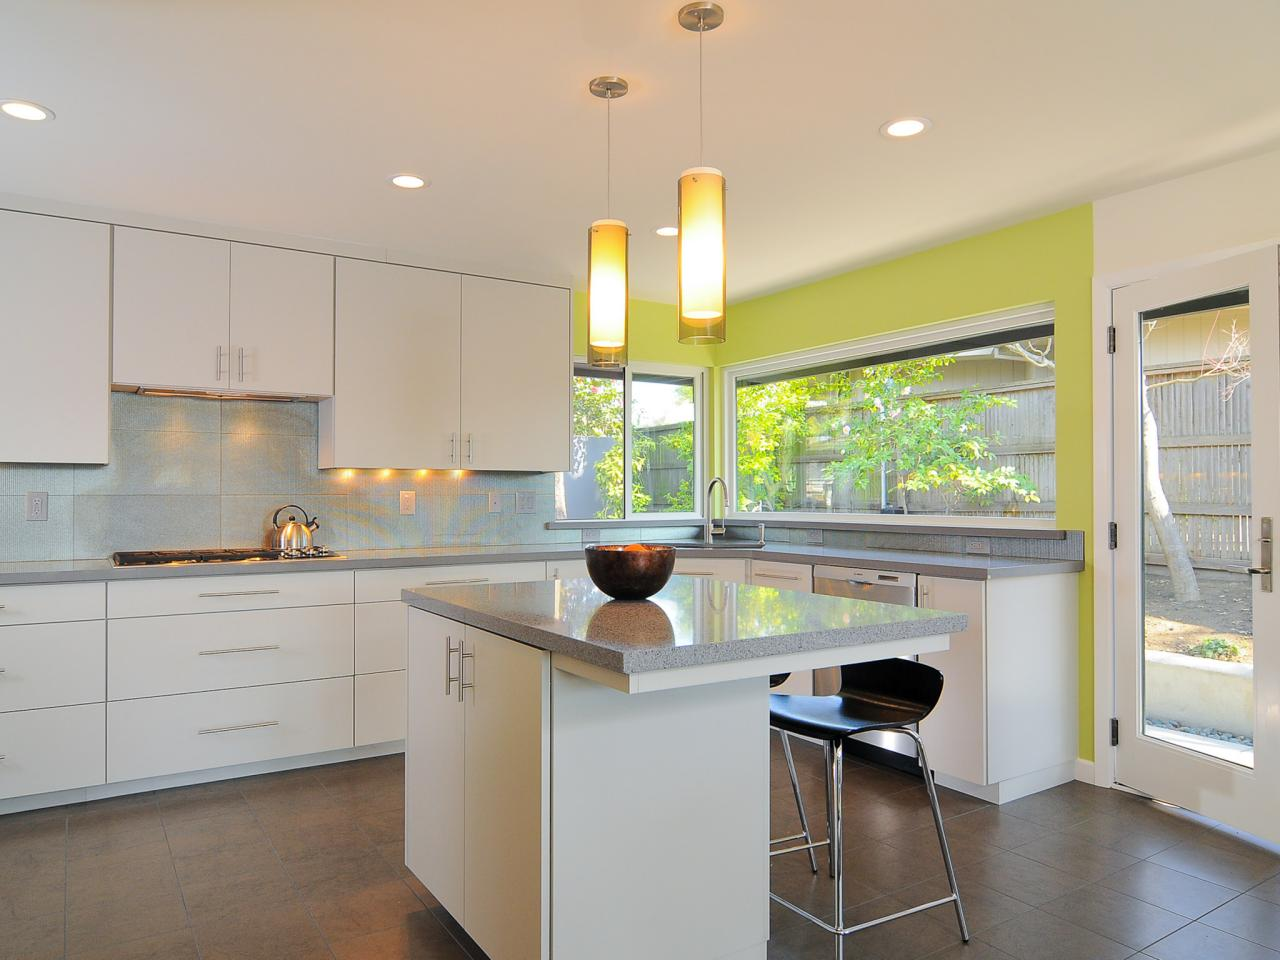 Modern White Kitchen Decor shaker kitchen cabinets: pictures, ideas & tips from hgtv | hgtv